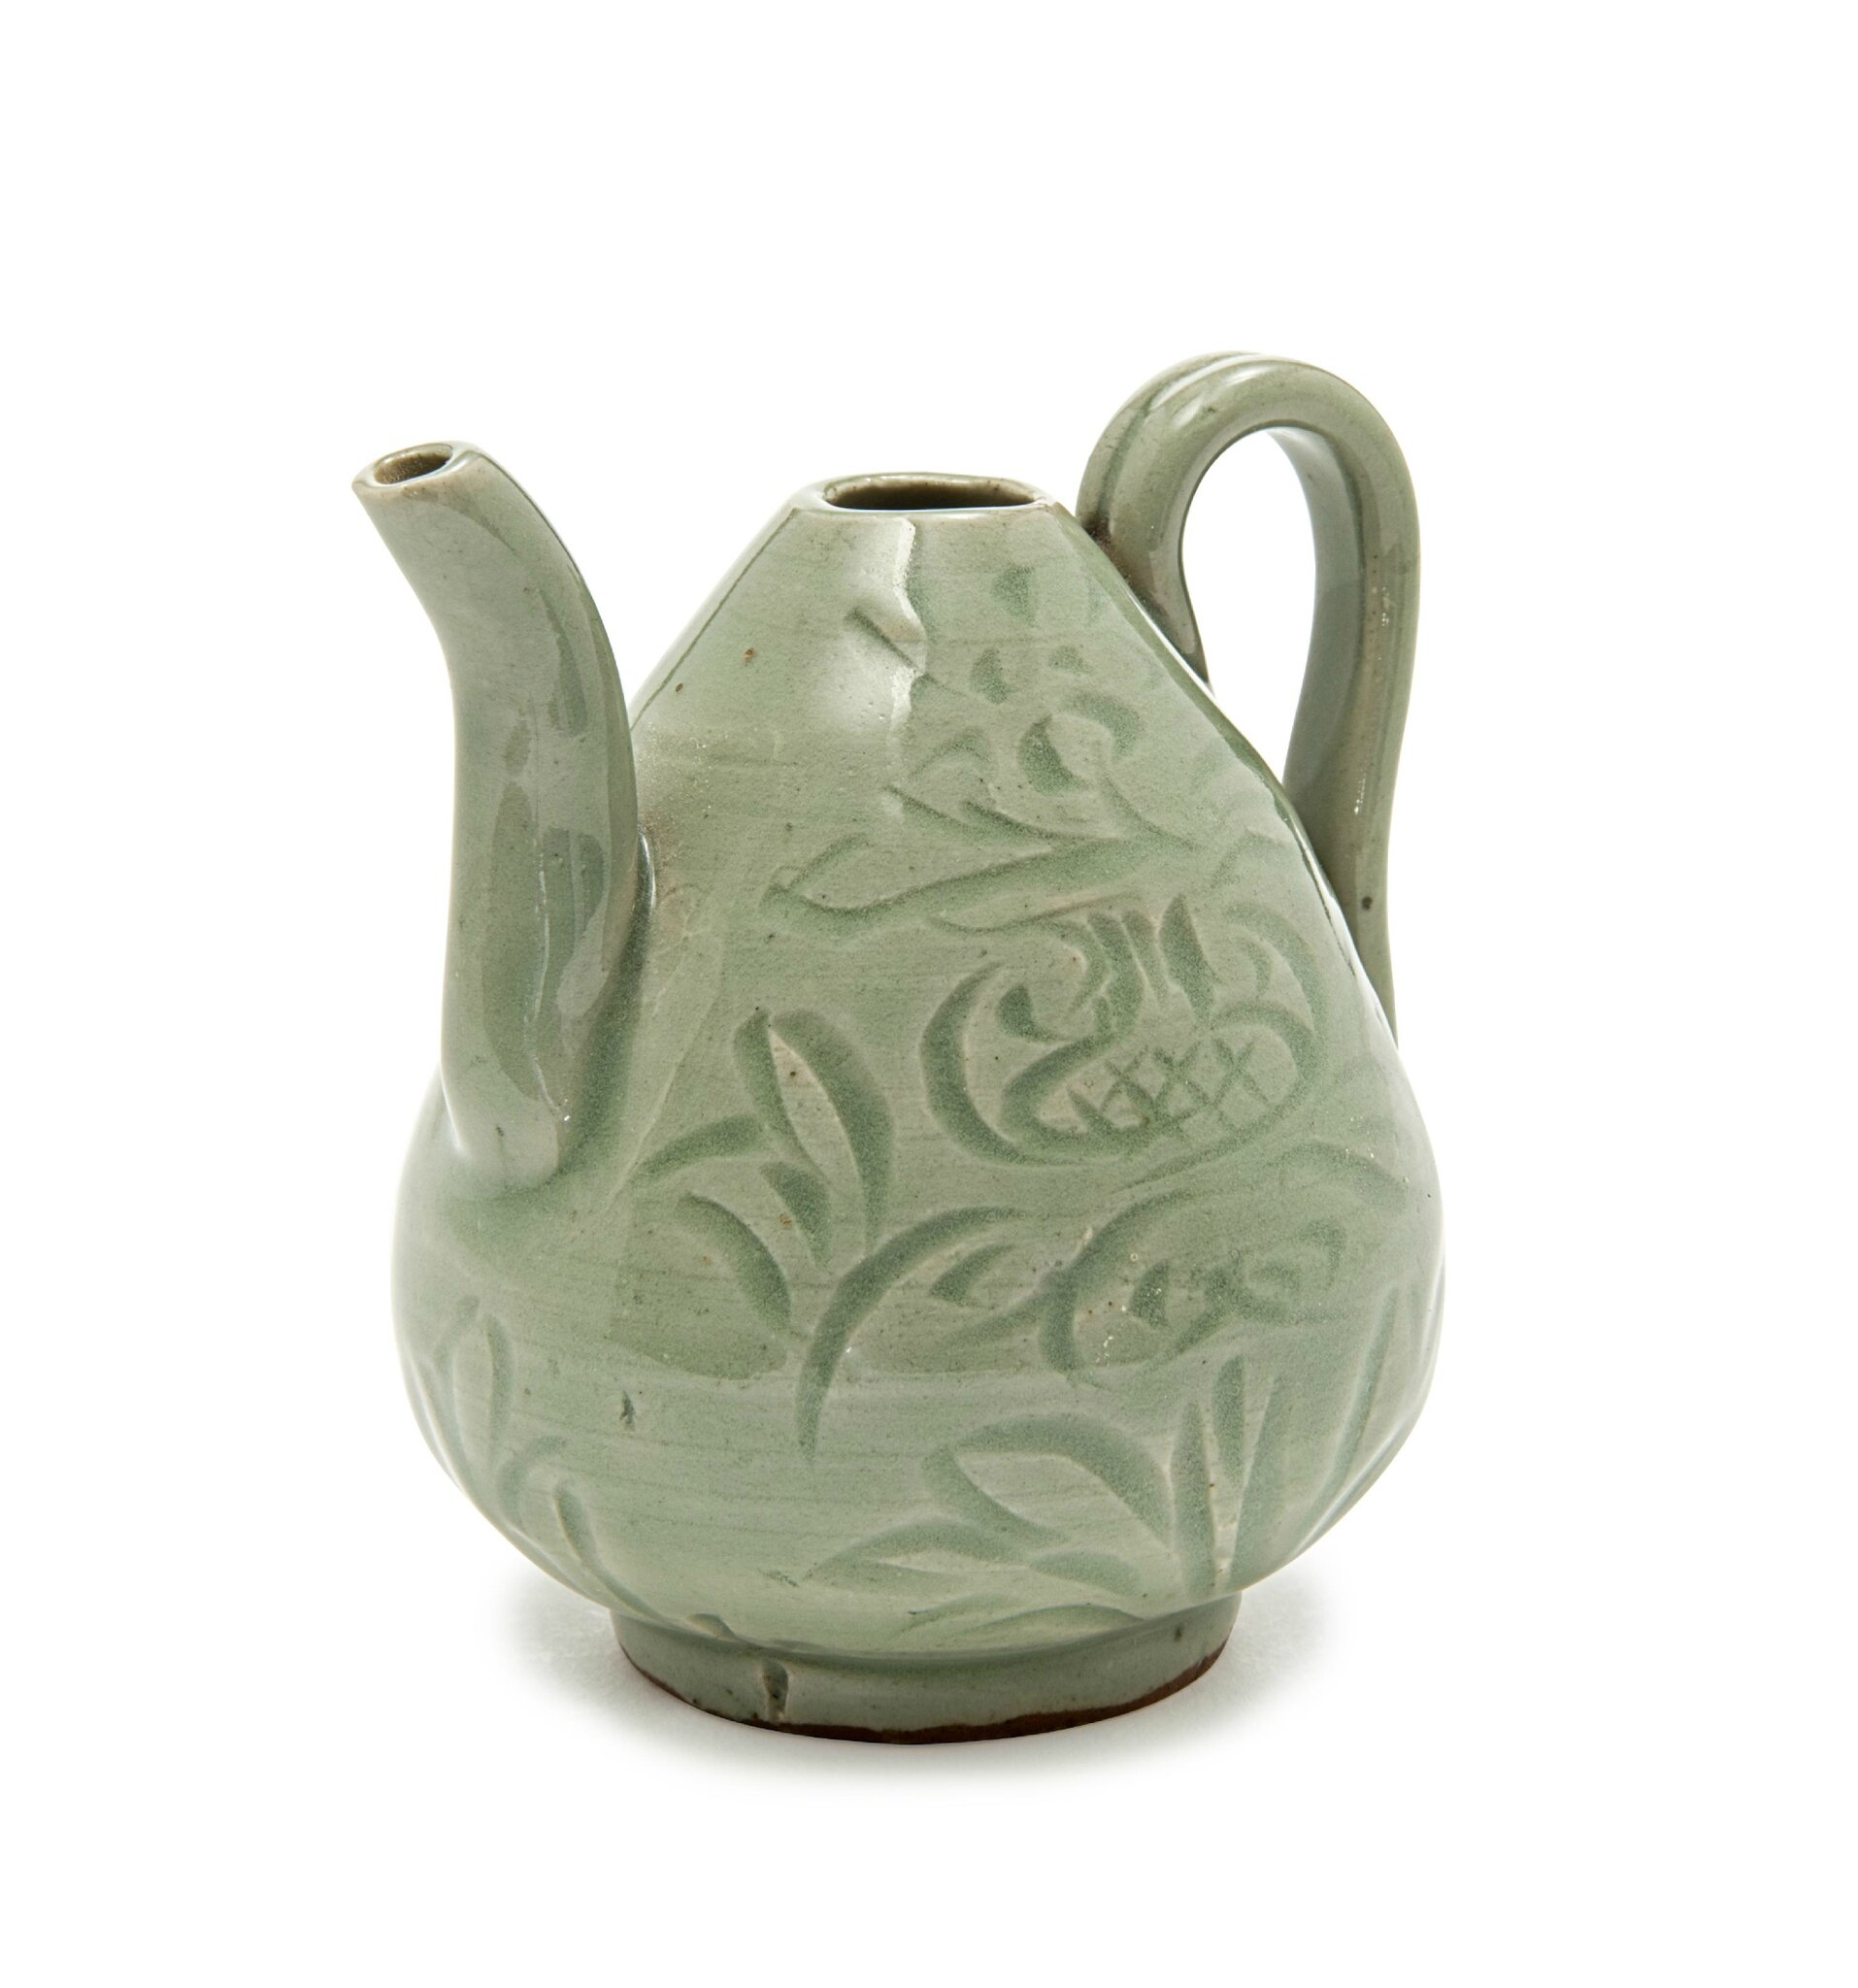 A Longquan celadon-glazed small wine ewer, Song dynasty (960-1279)